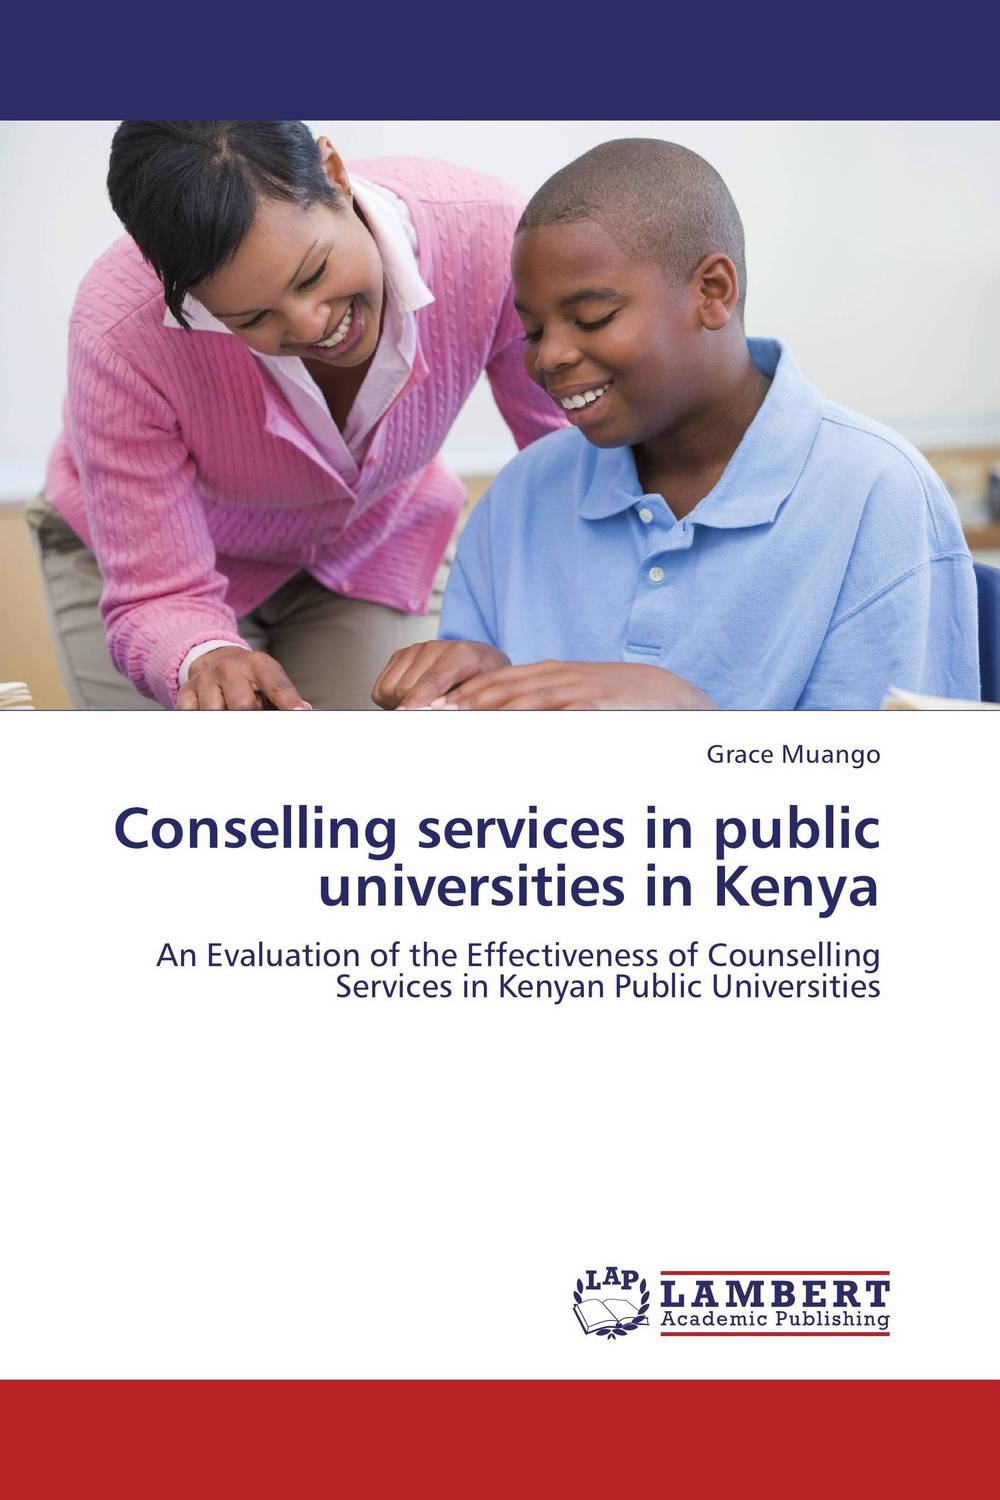 купить Conselling services in public universities in Kenya недорого